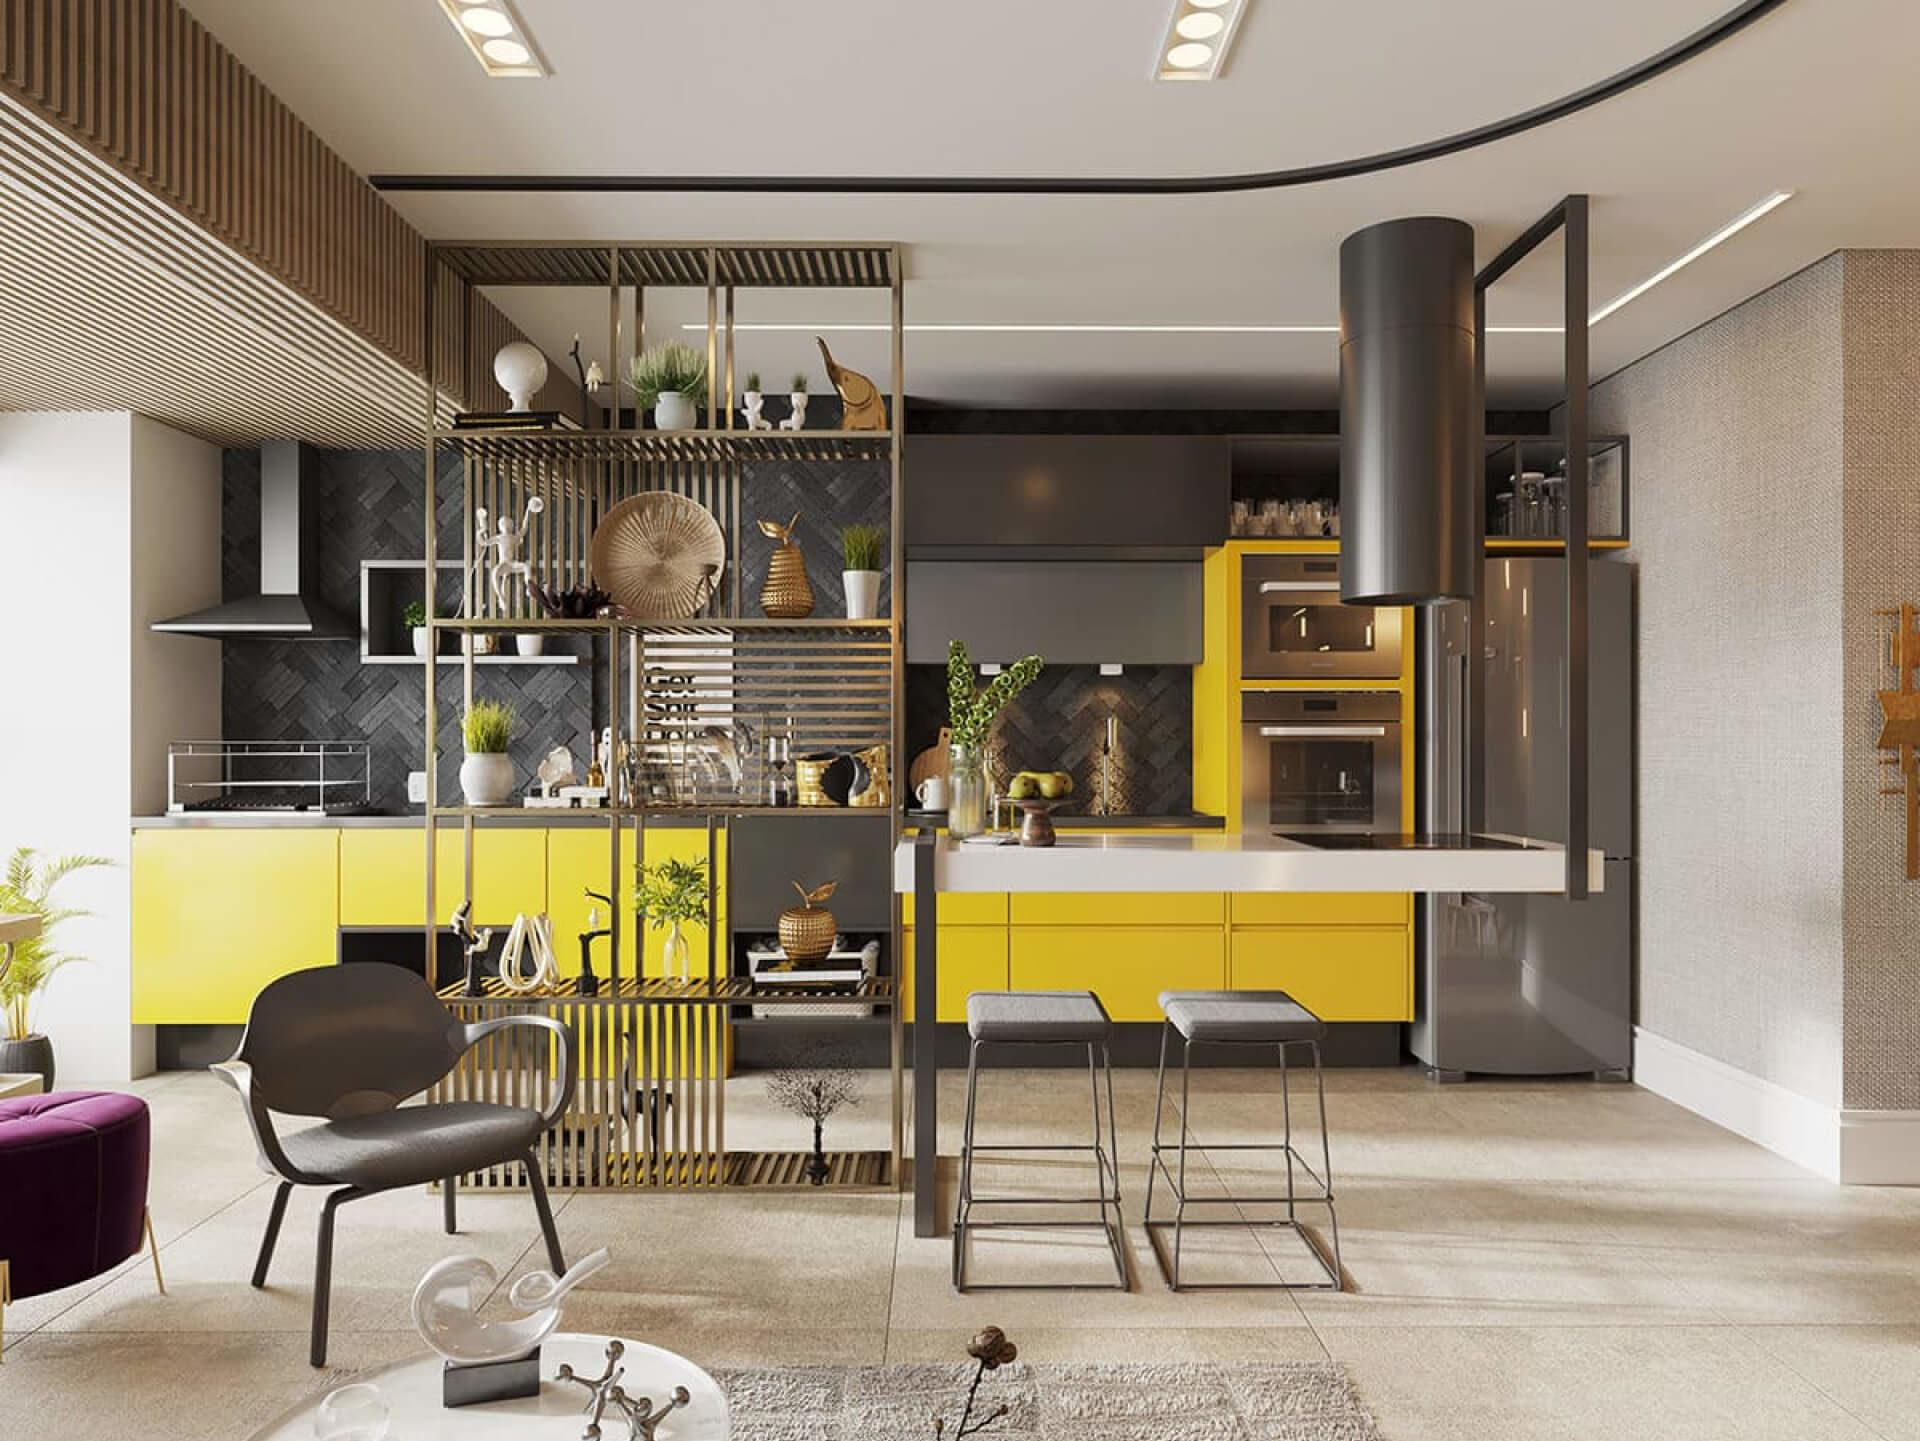 Open kitchen integrated into the apartment.